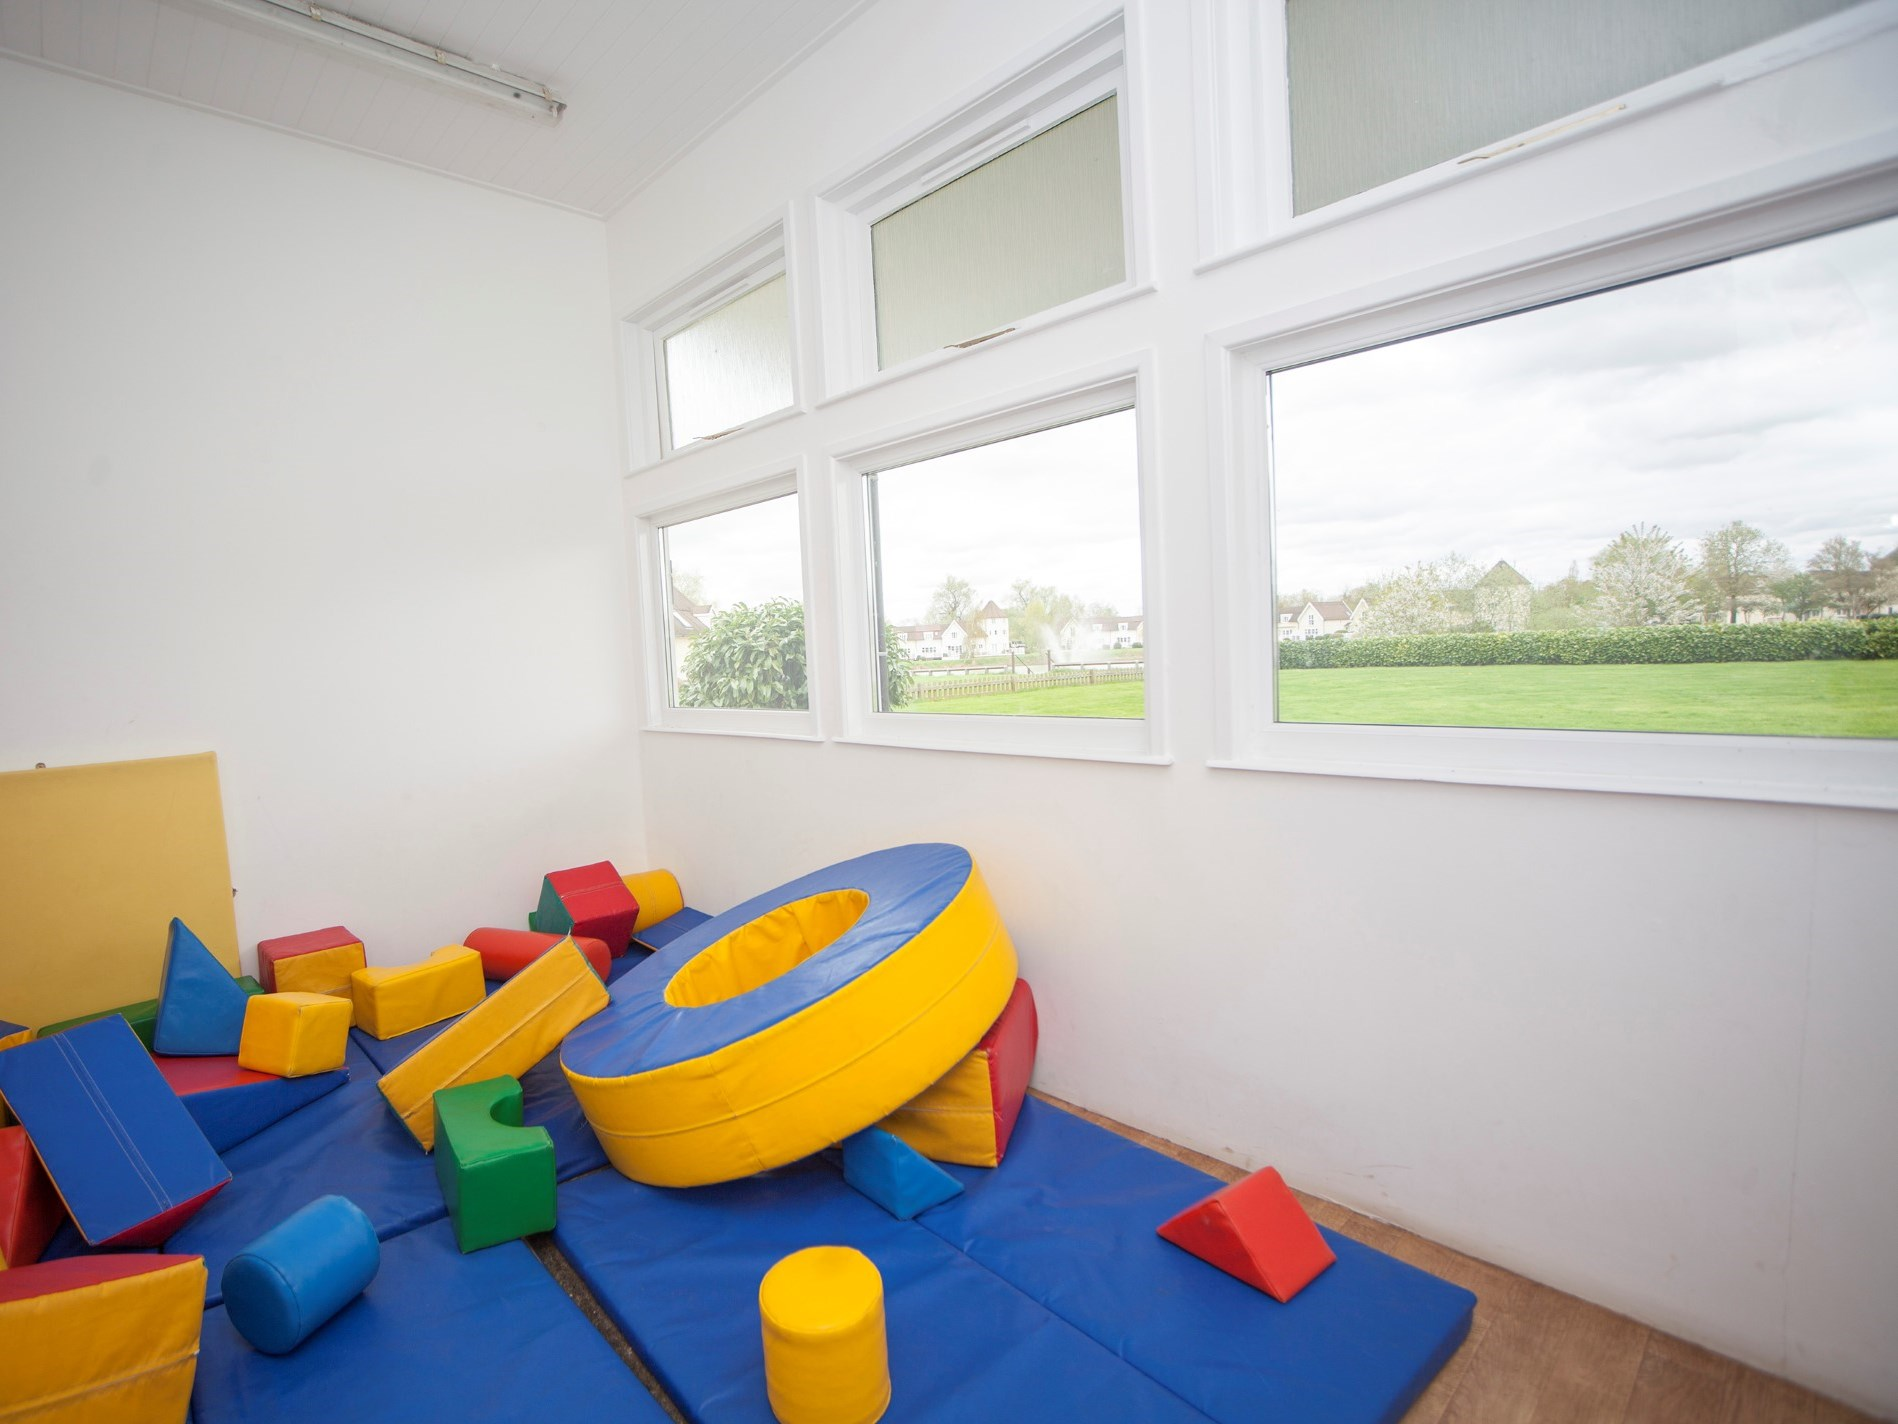 Childrens play facilities